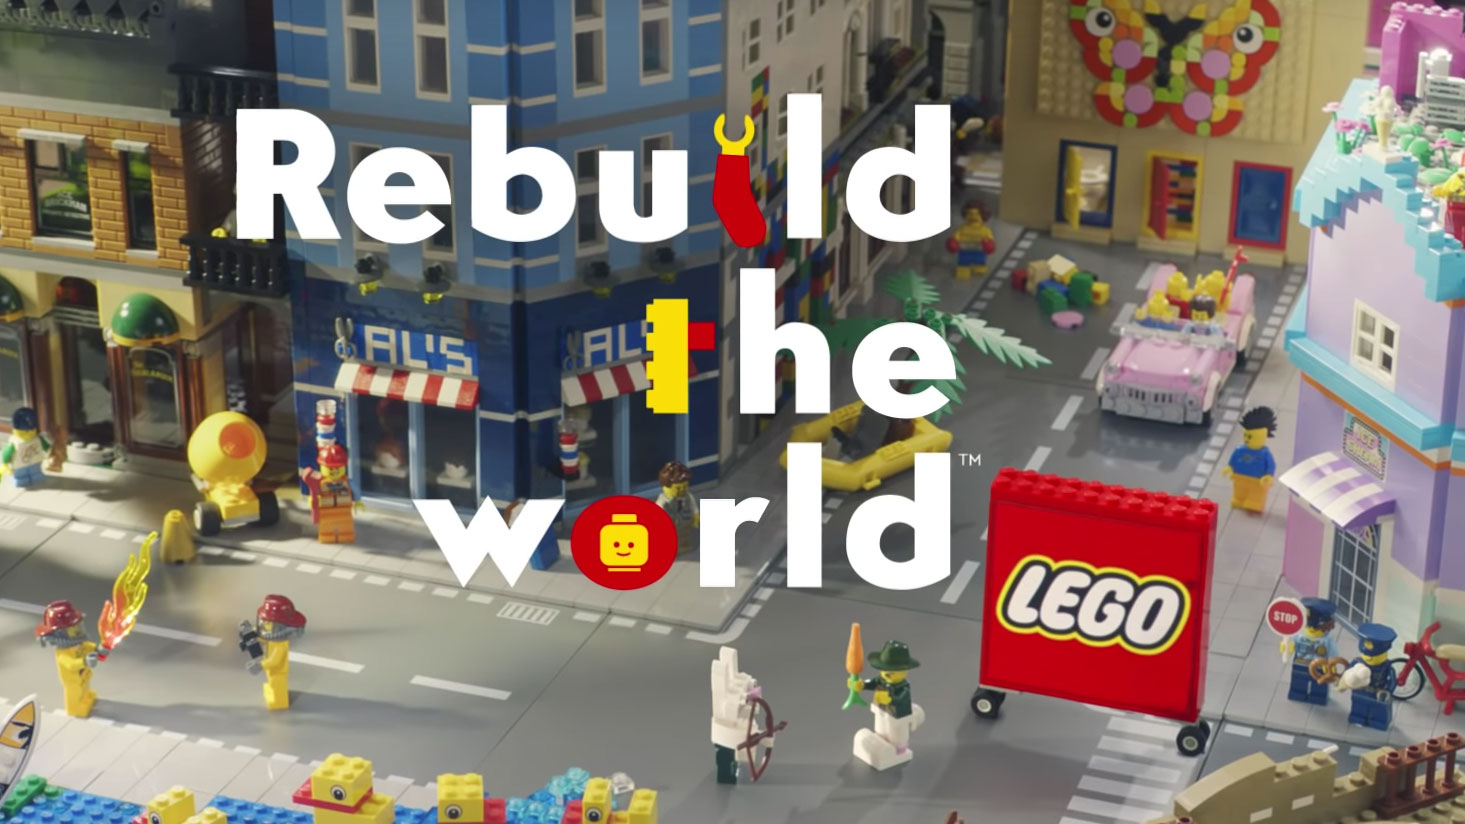 Lego's stunning new ads are a creative force for good